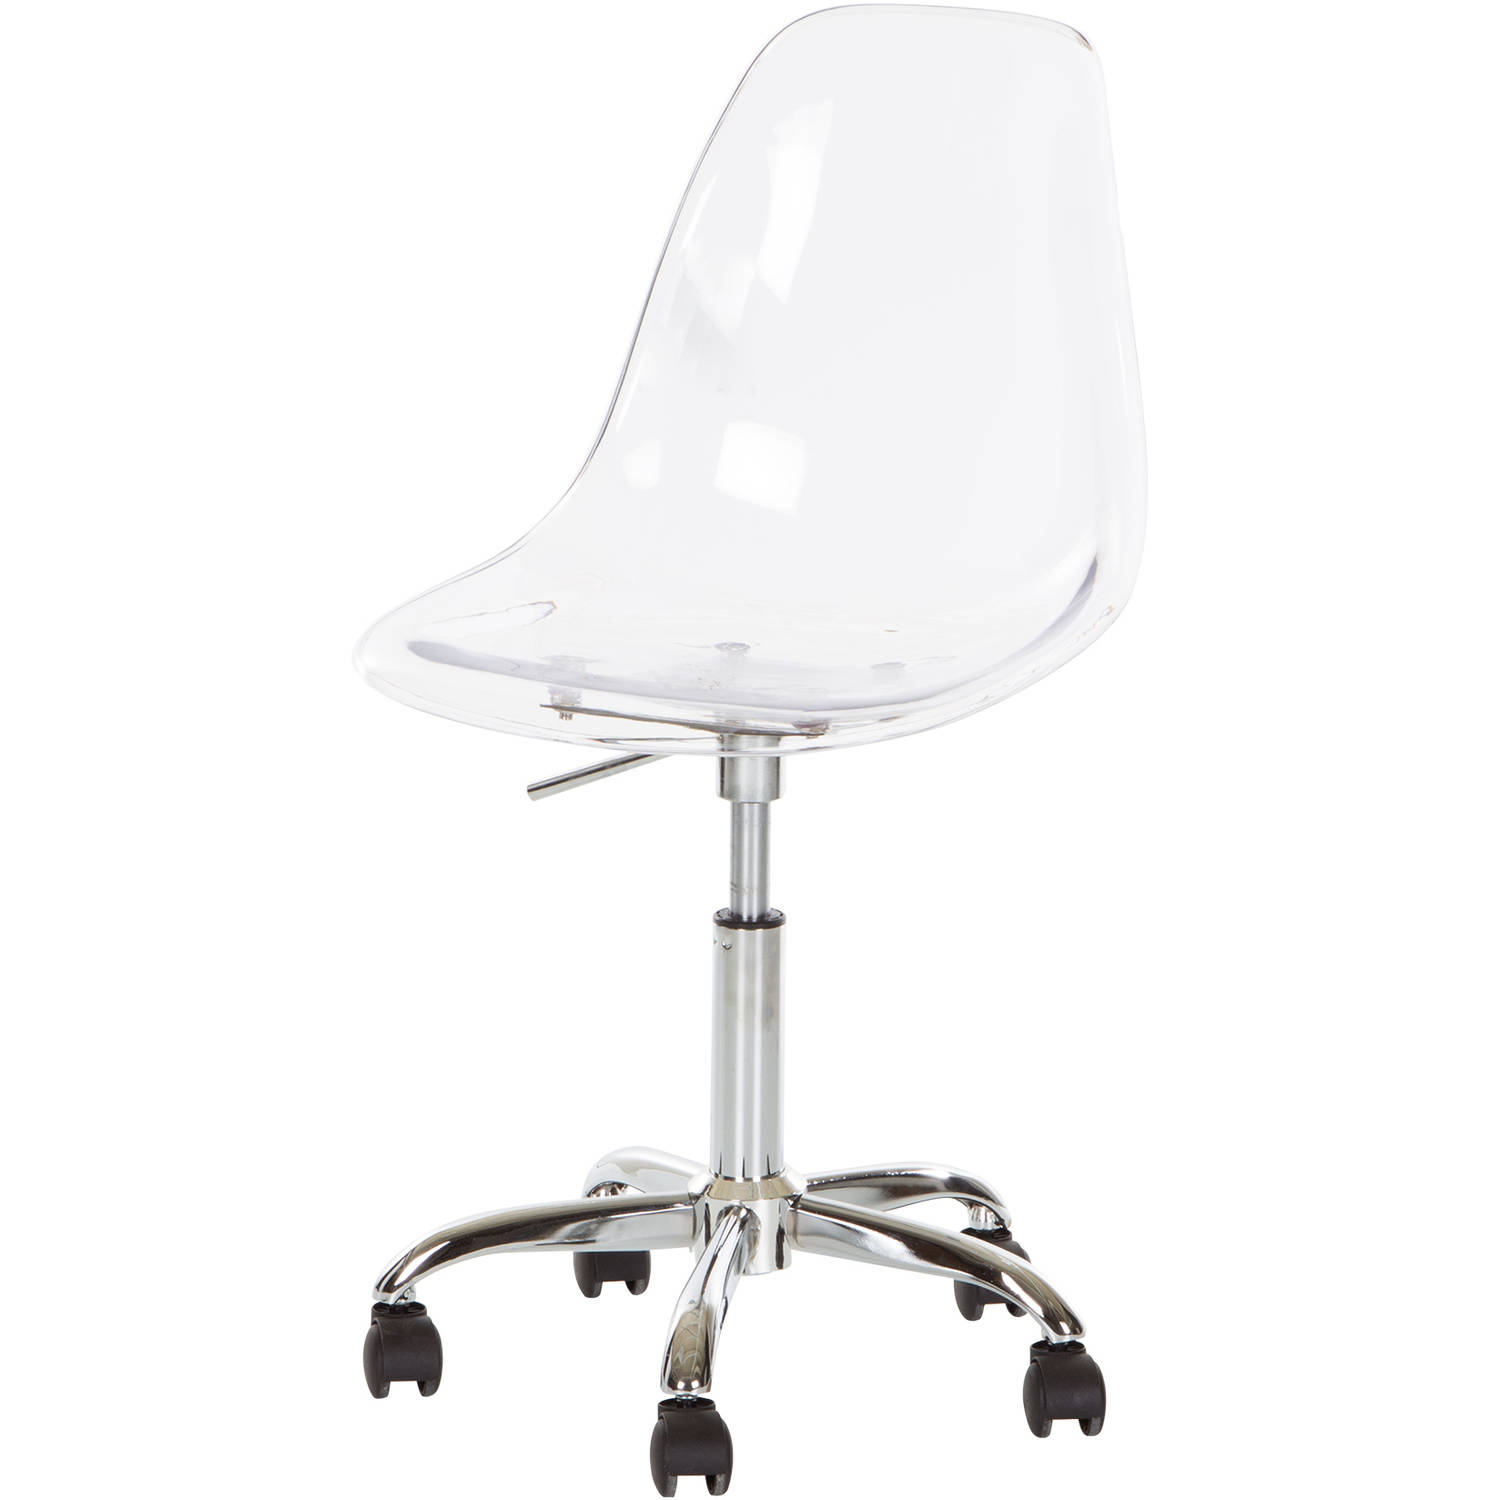 Exceptionnel South Shore Annexe Clear Office Chair With Wheels, Multiple Colors    Walmart.com